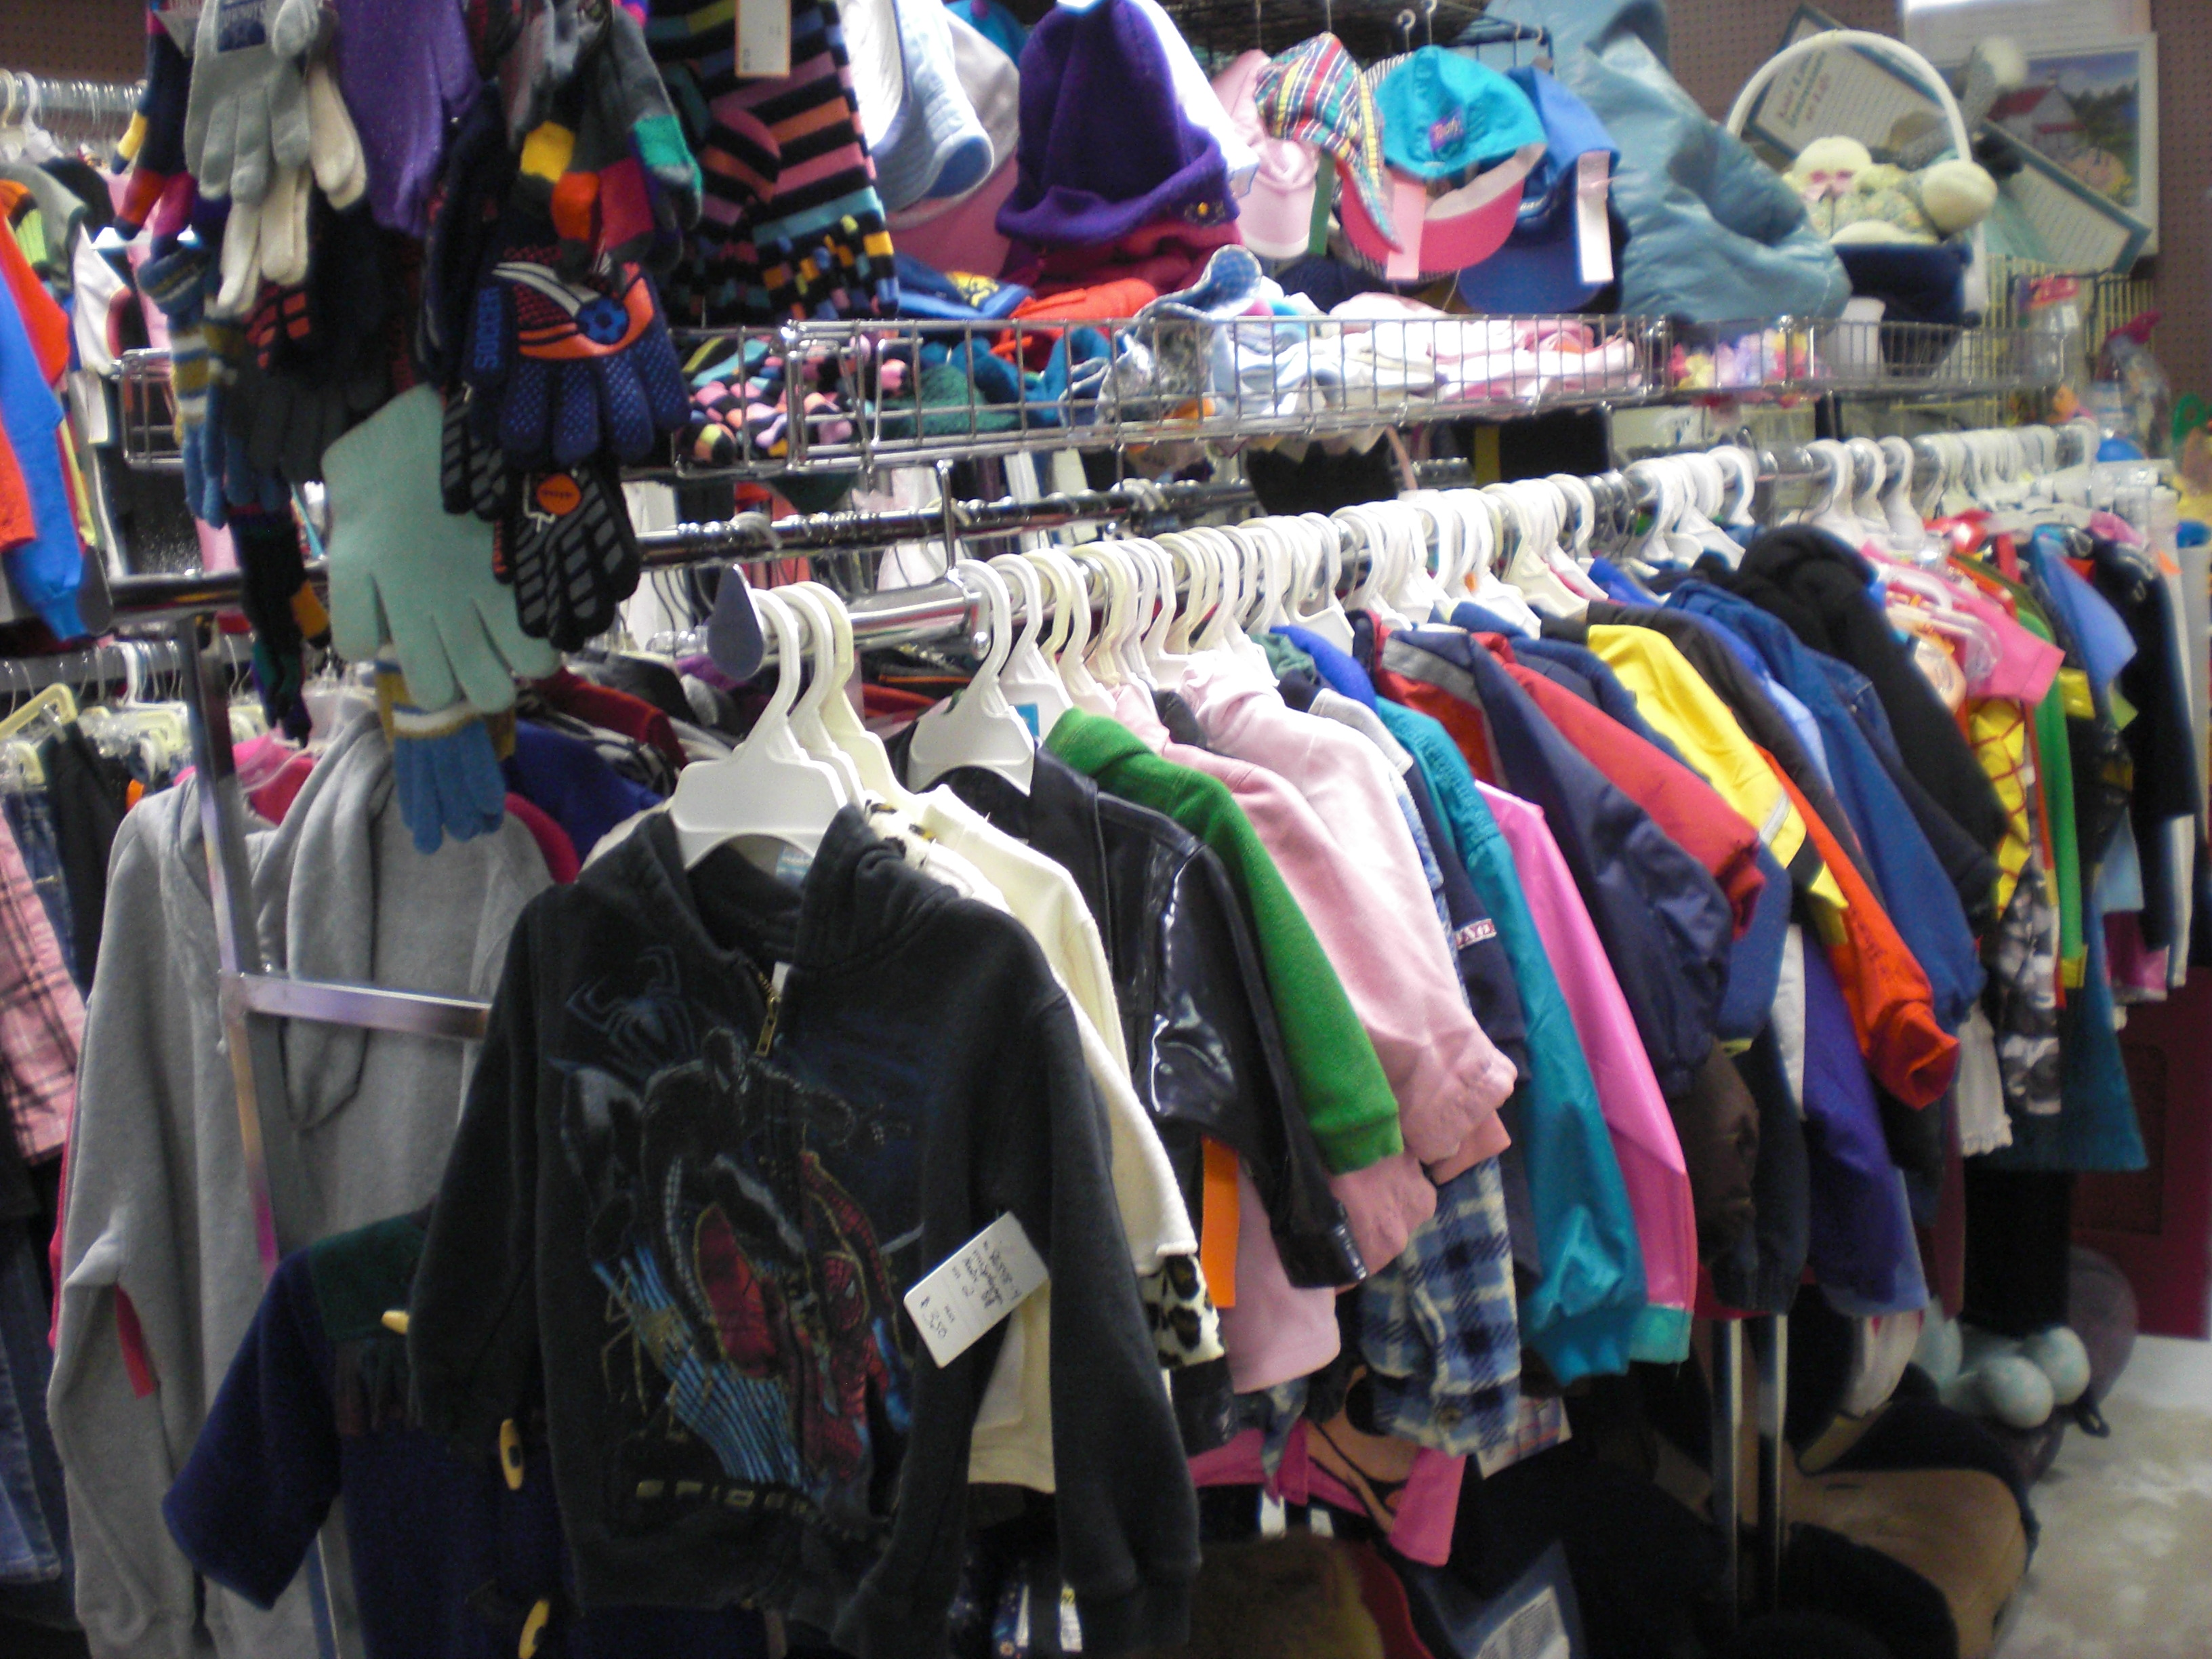 Loads of clothes for boys and girls infant - young teen